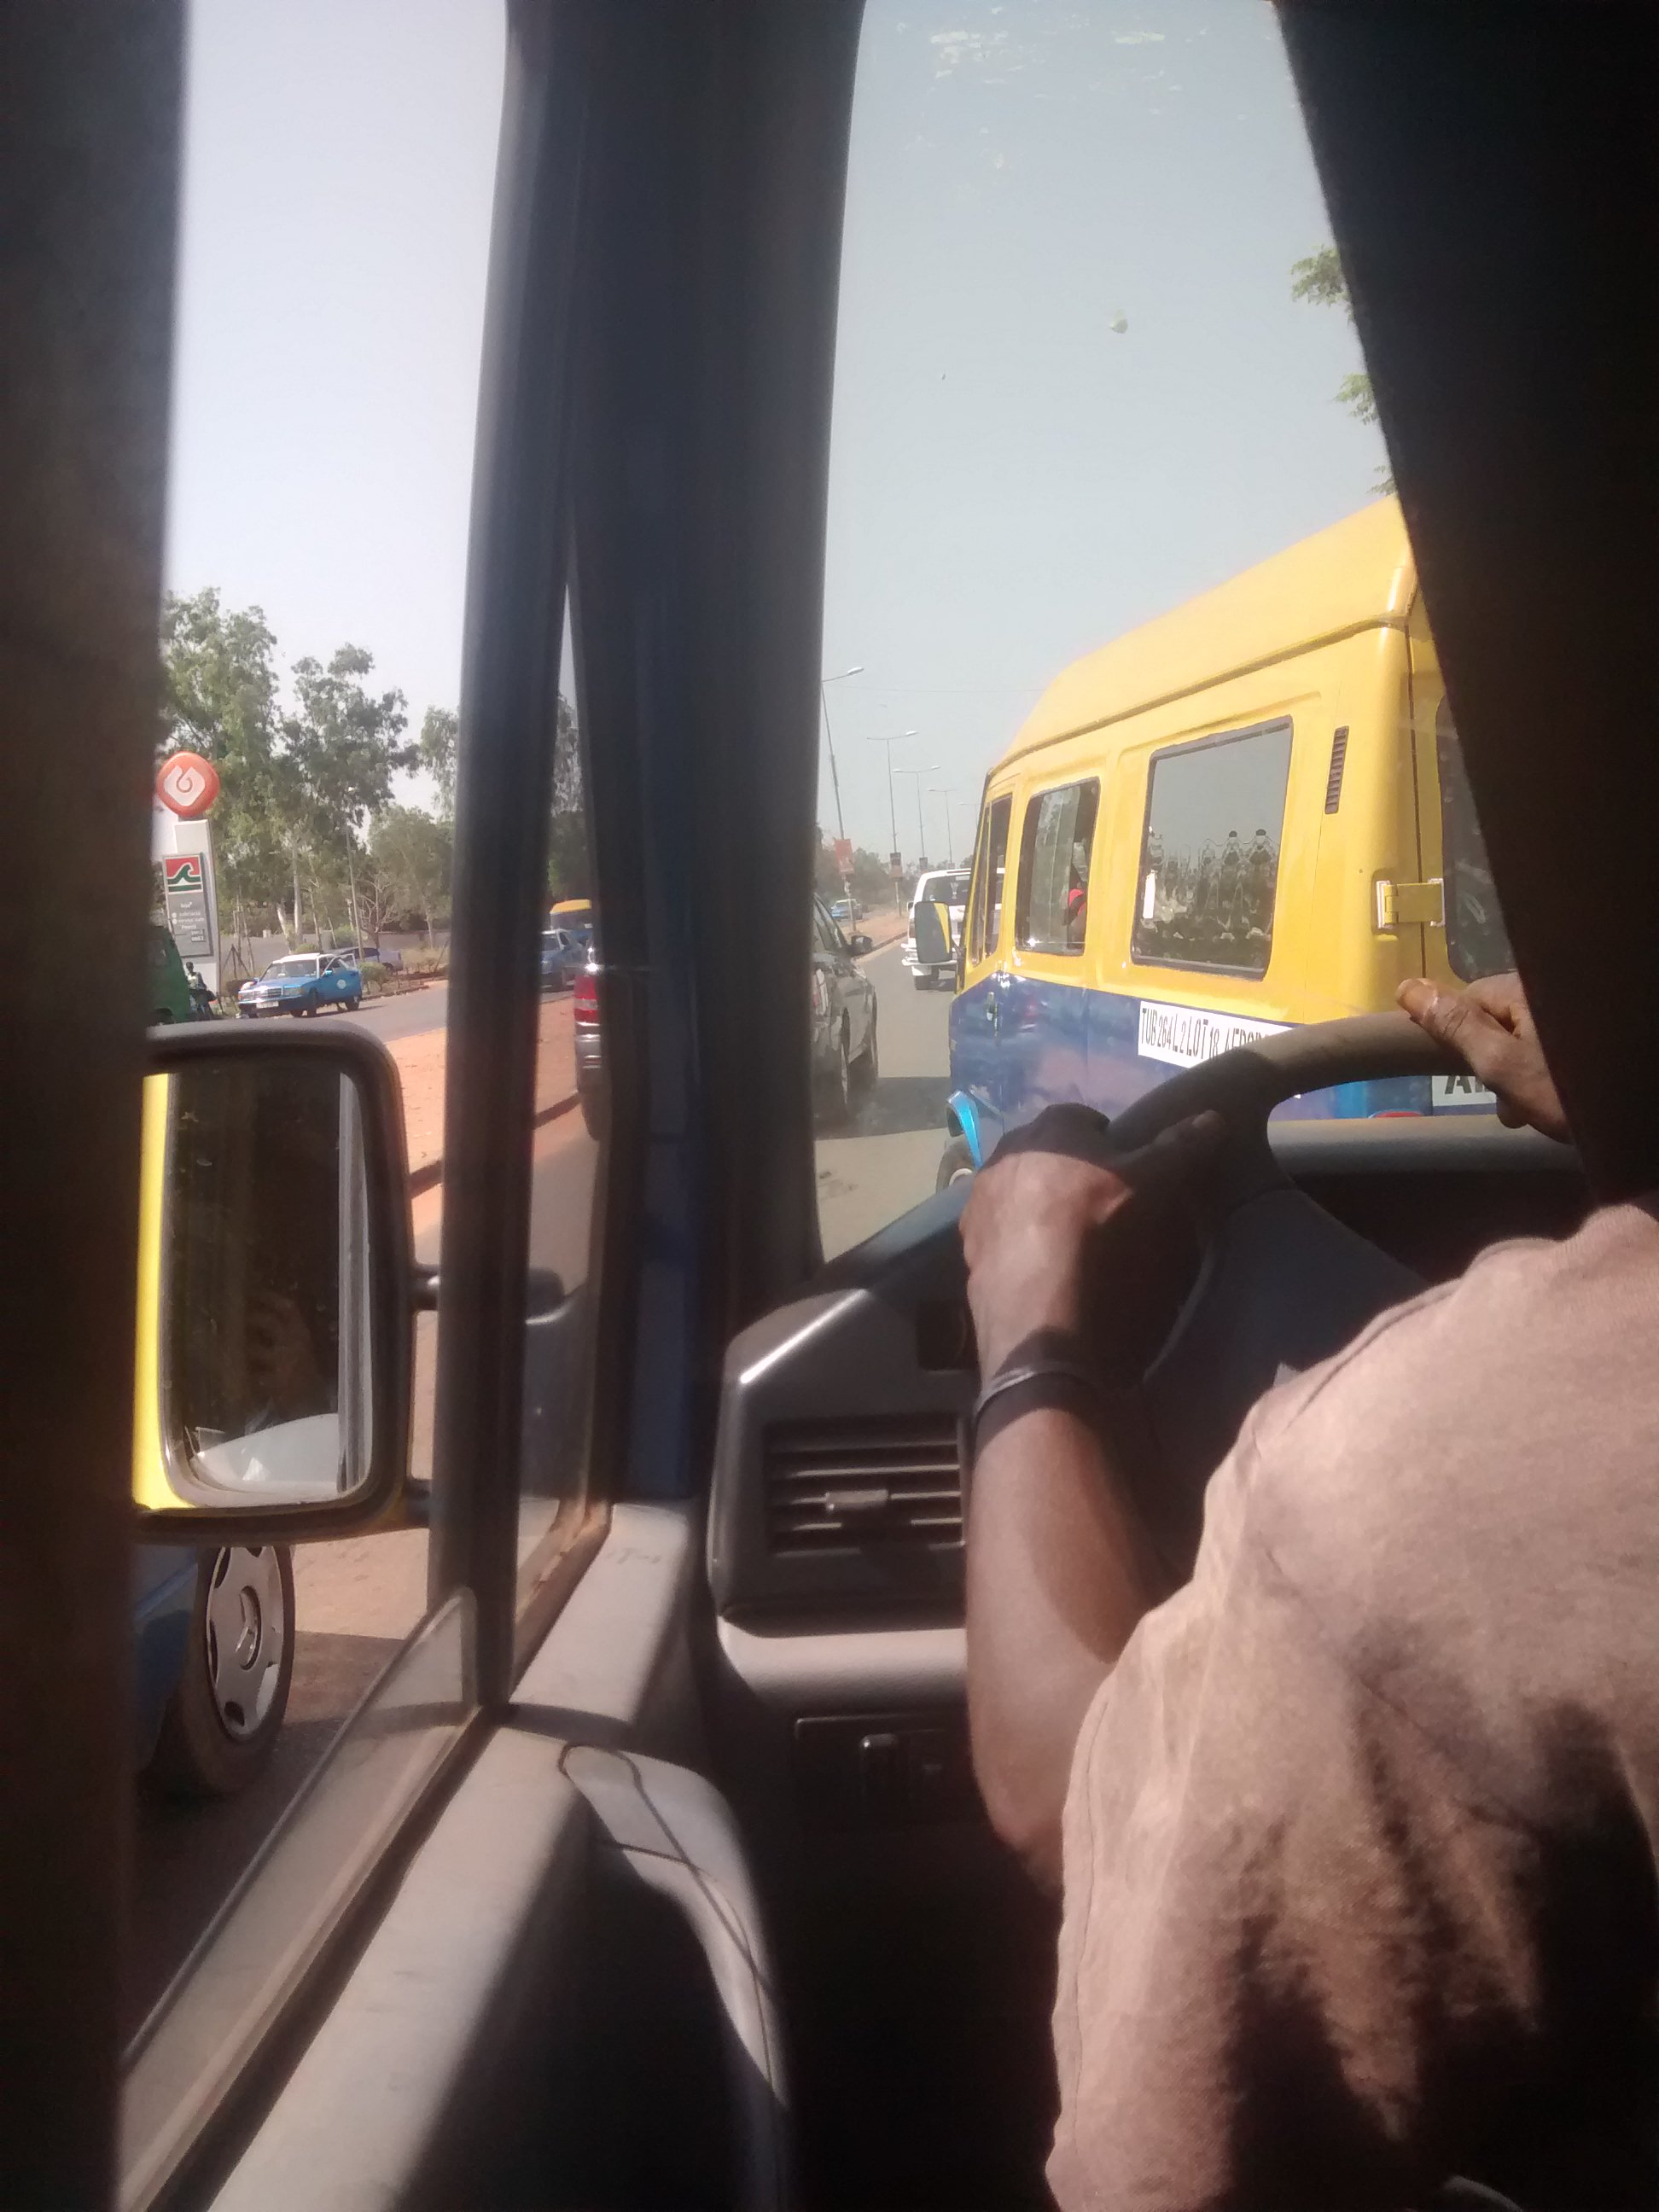 Getting the bus in Bissau, Guinea-Bissau.